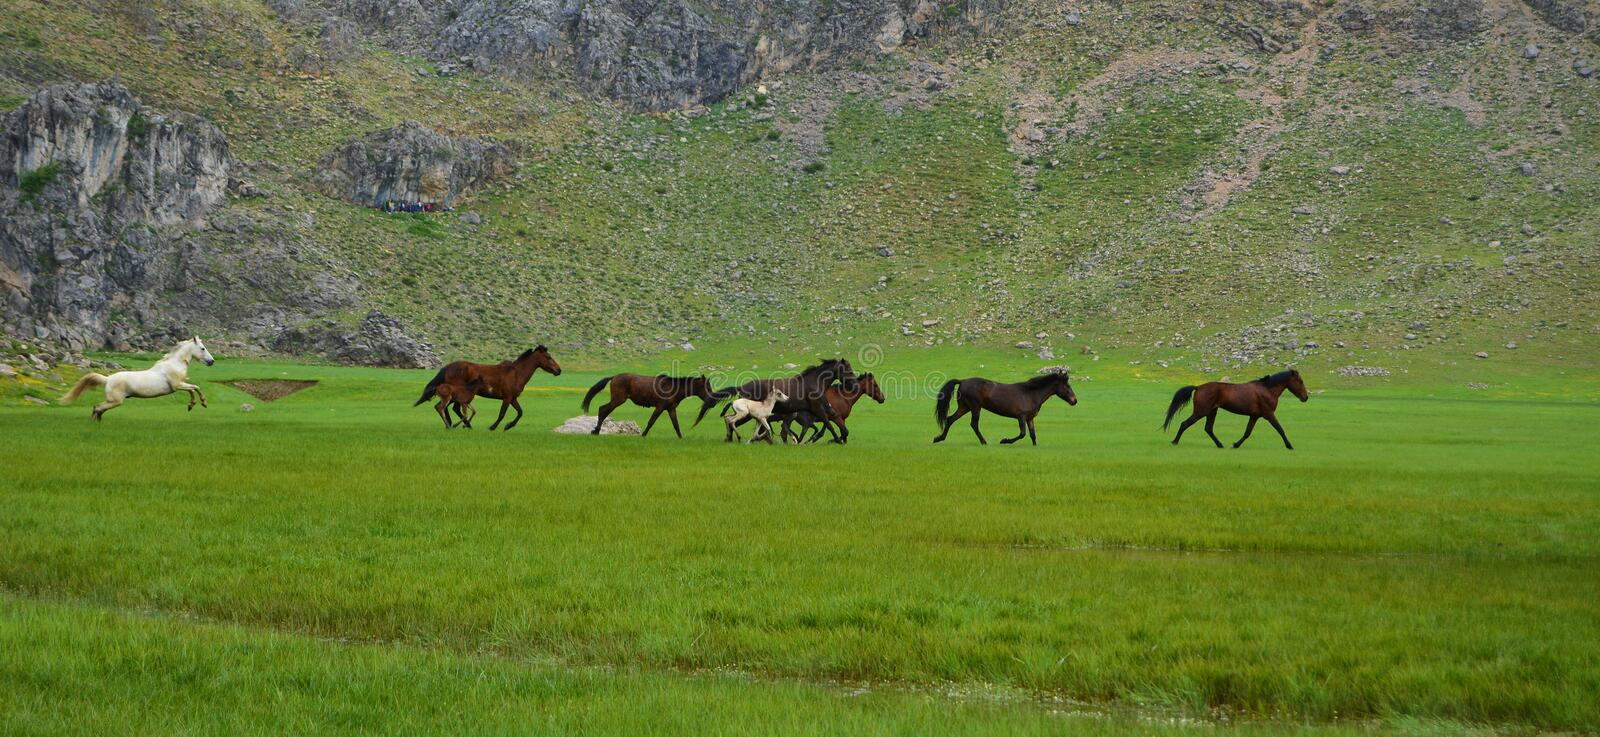 Wild horses and freedom. Horse herd in mountain areas.Galloping horses.wild horses.nfreedom horses royalty free stock image